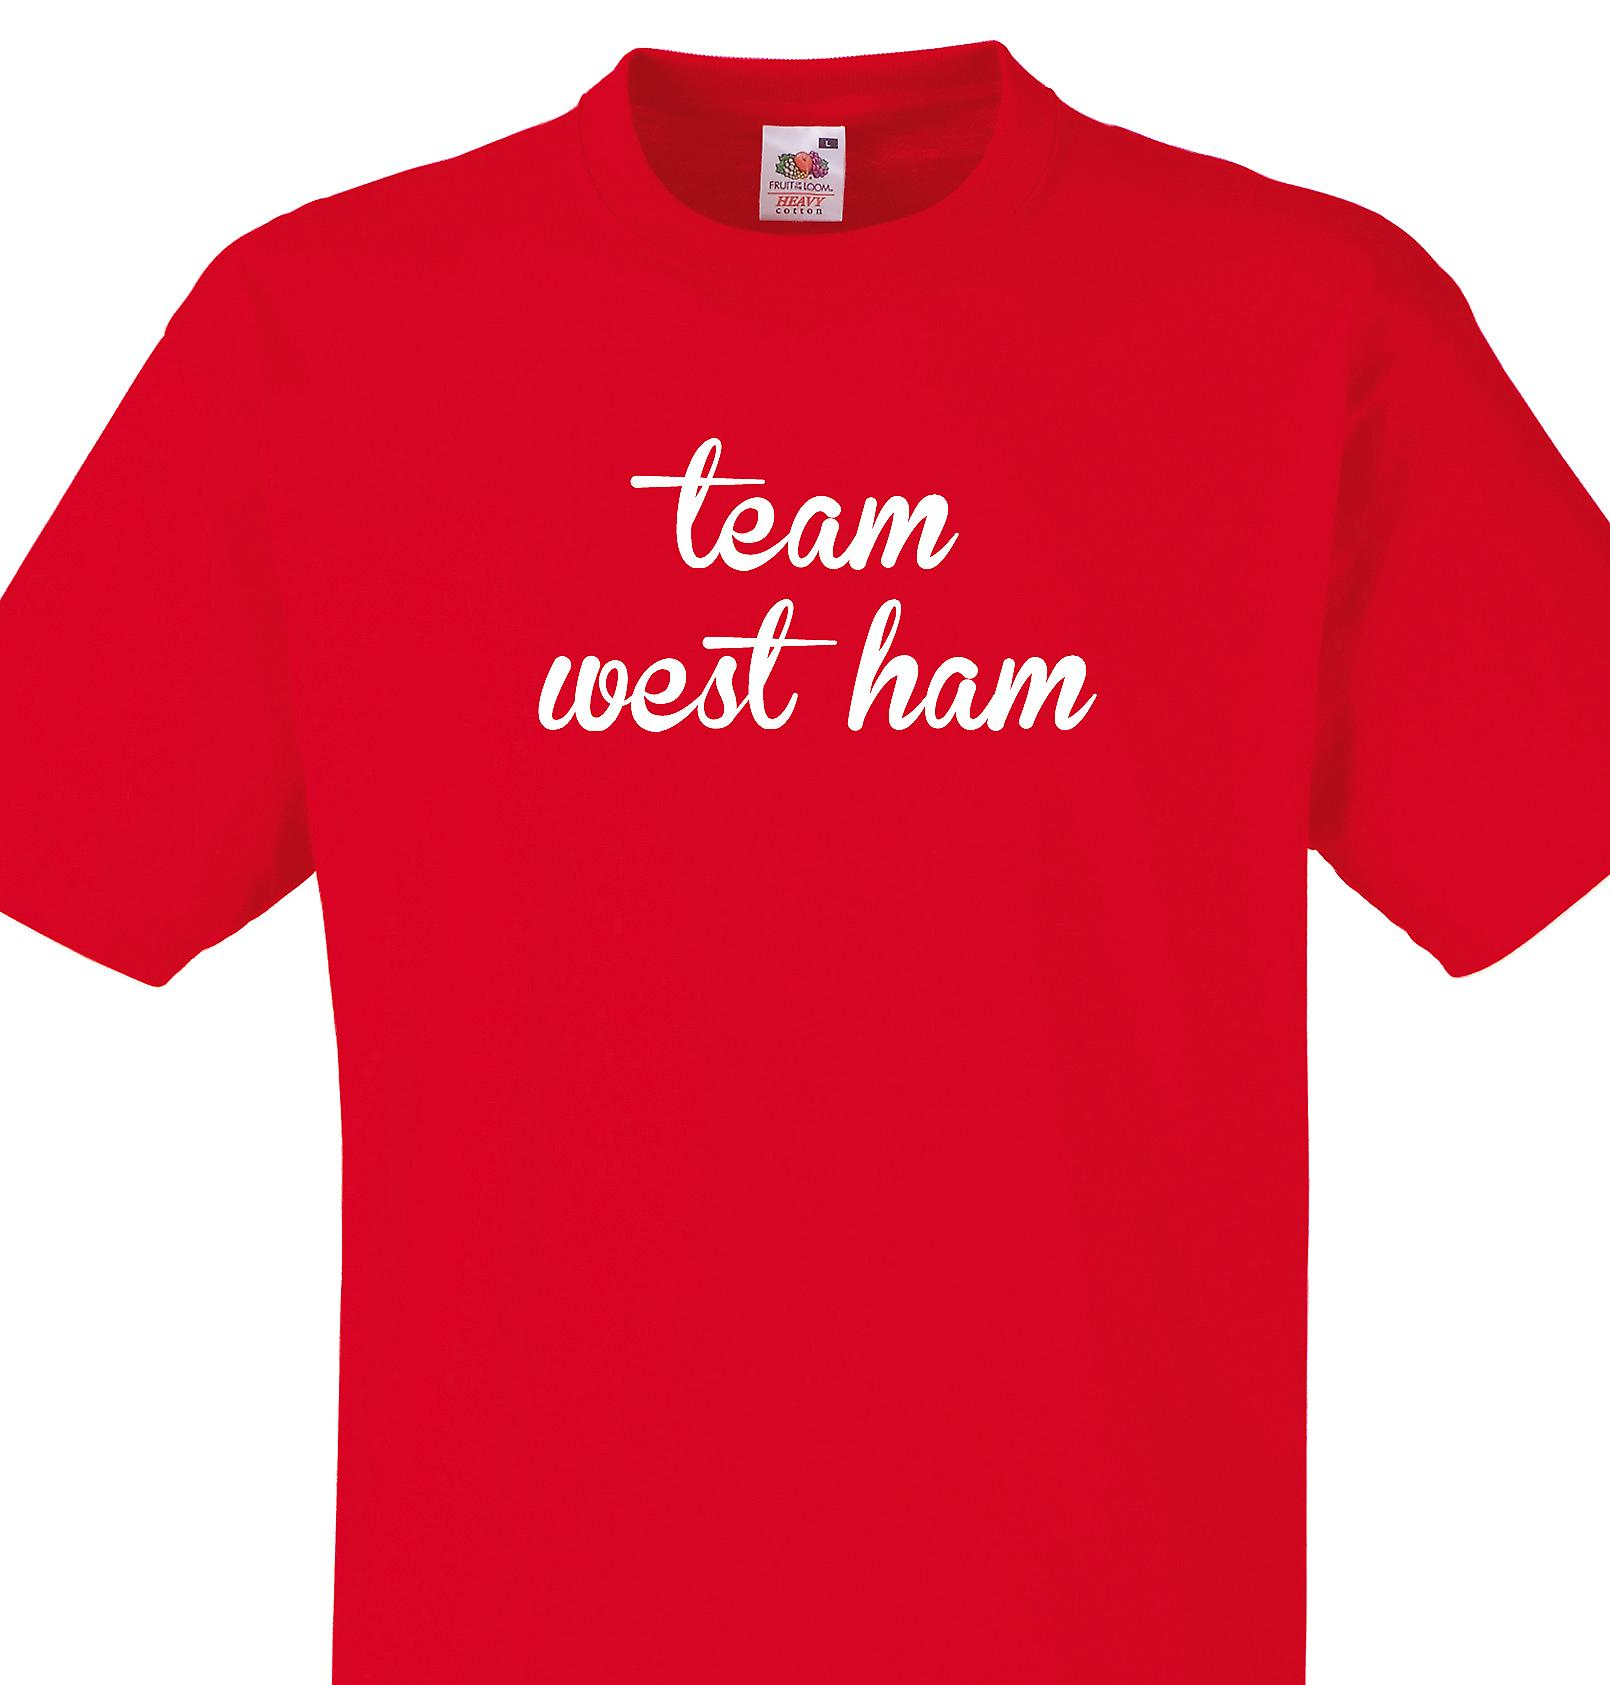 Team West ham Red T shirt